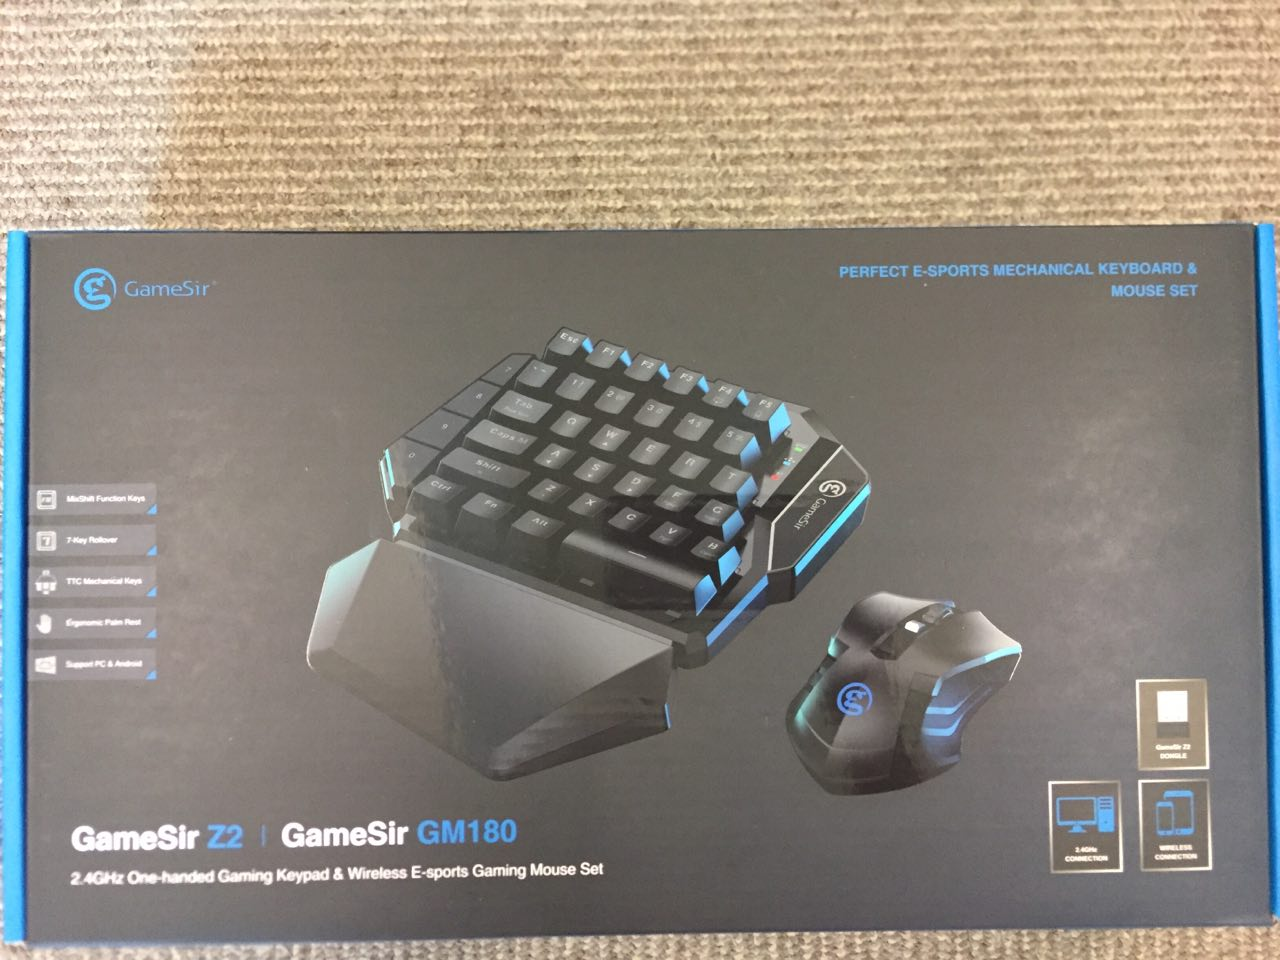 GameSir Z2 E-sports Gaming Wireless Keypad Mouse Combo 2.4GHz One-handed Blue Switch Keyboard For FPS Games - Black